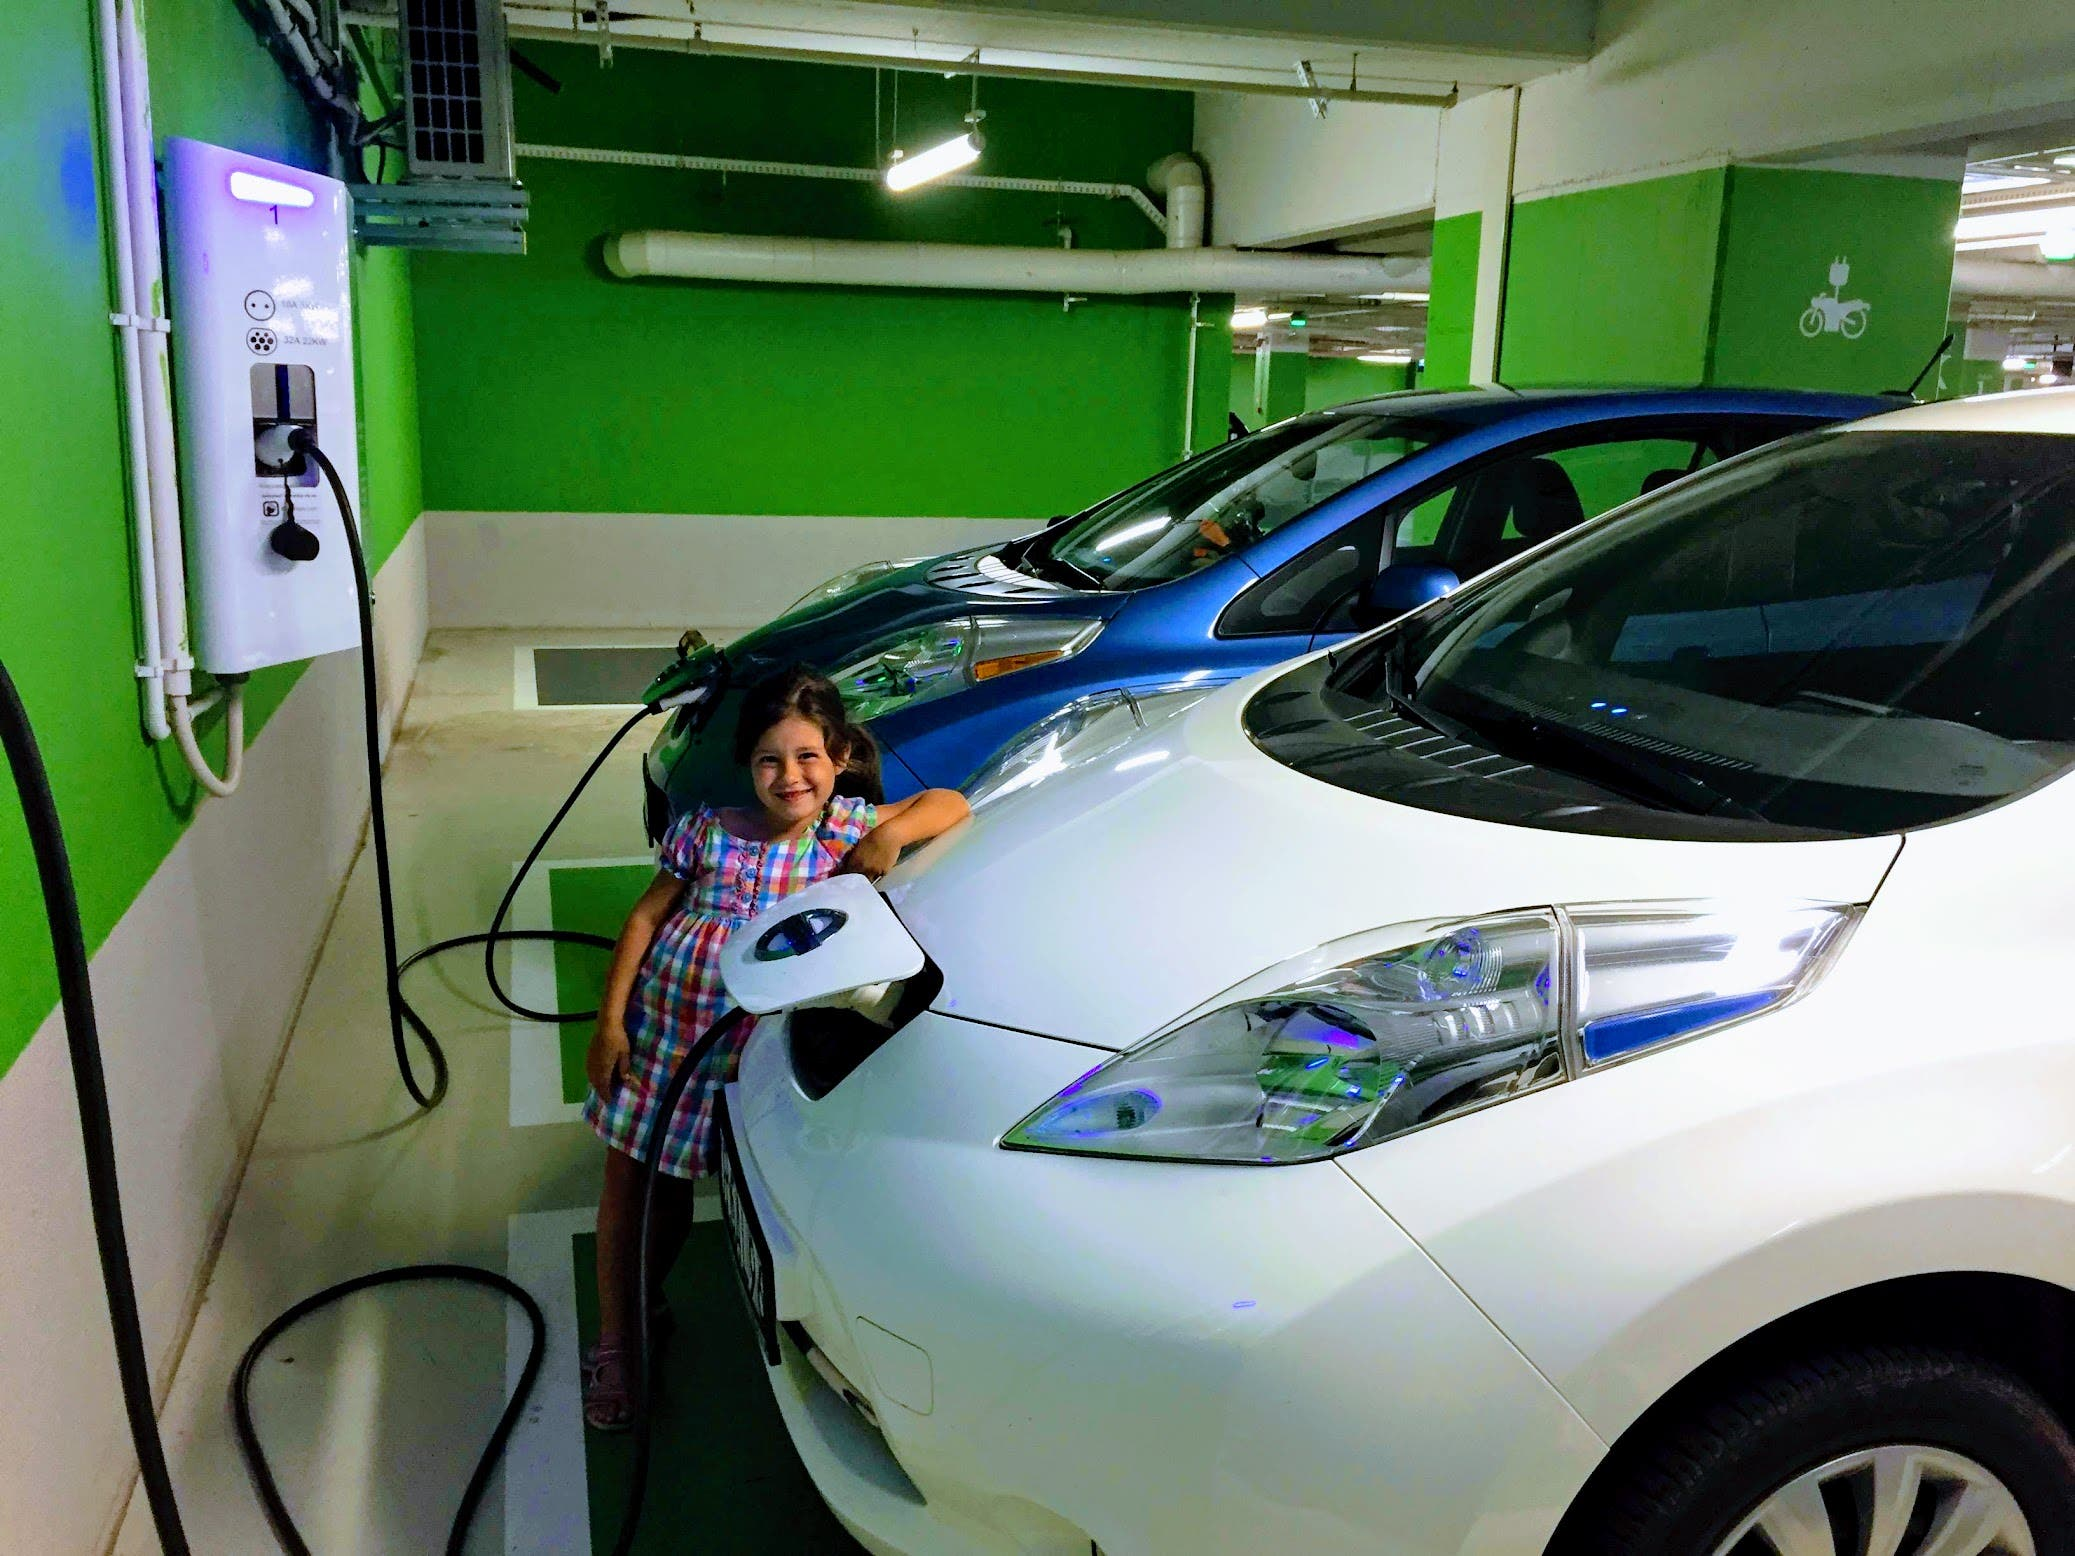 Consumer Reports: Car Buyers Want Electric Vehicles